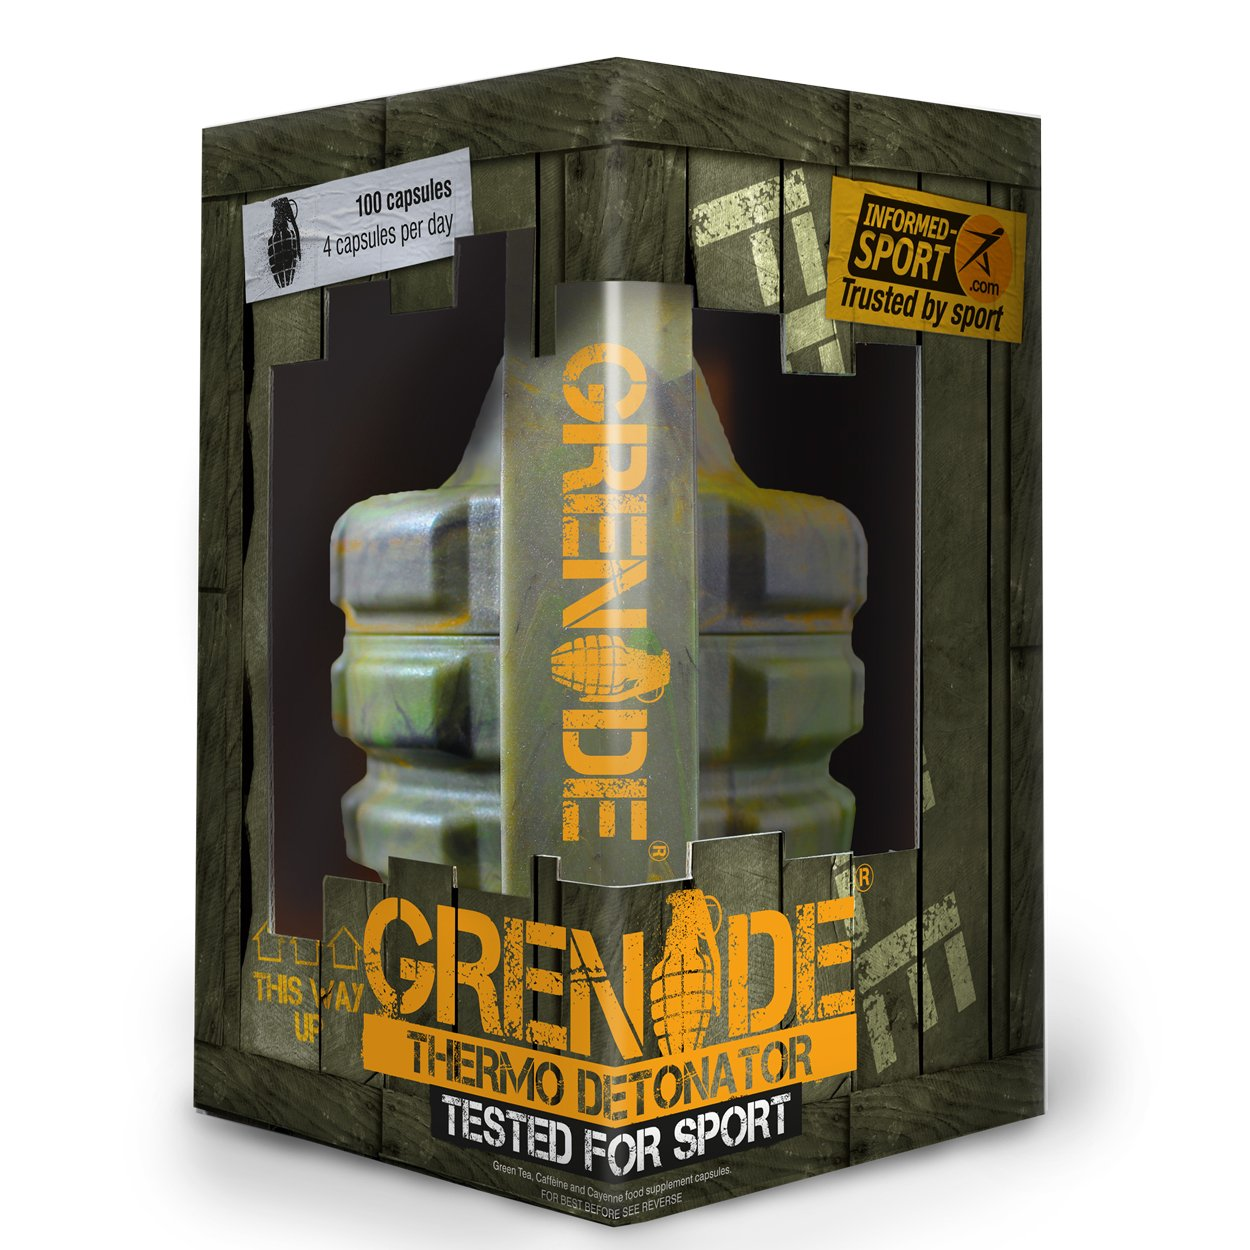 Grenade Fat Burner 100 caps (Informed Sports version)